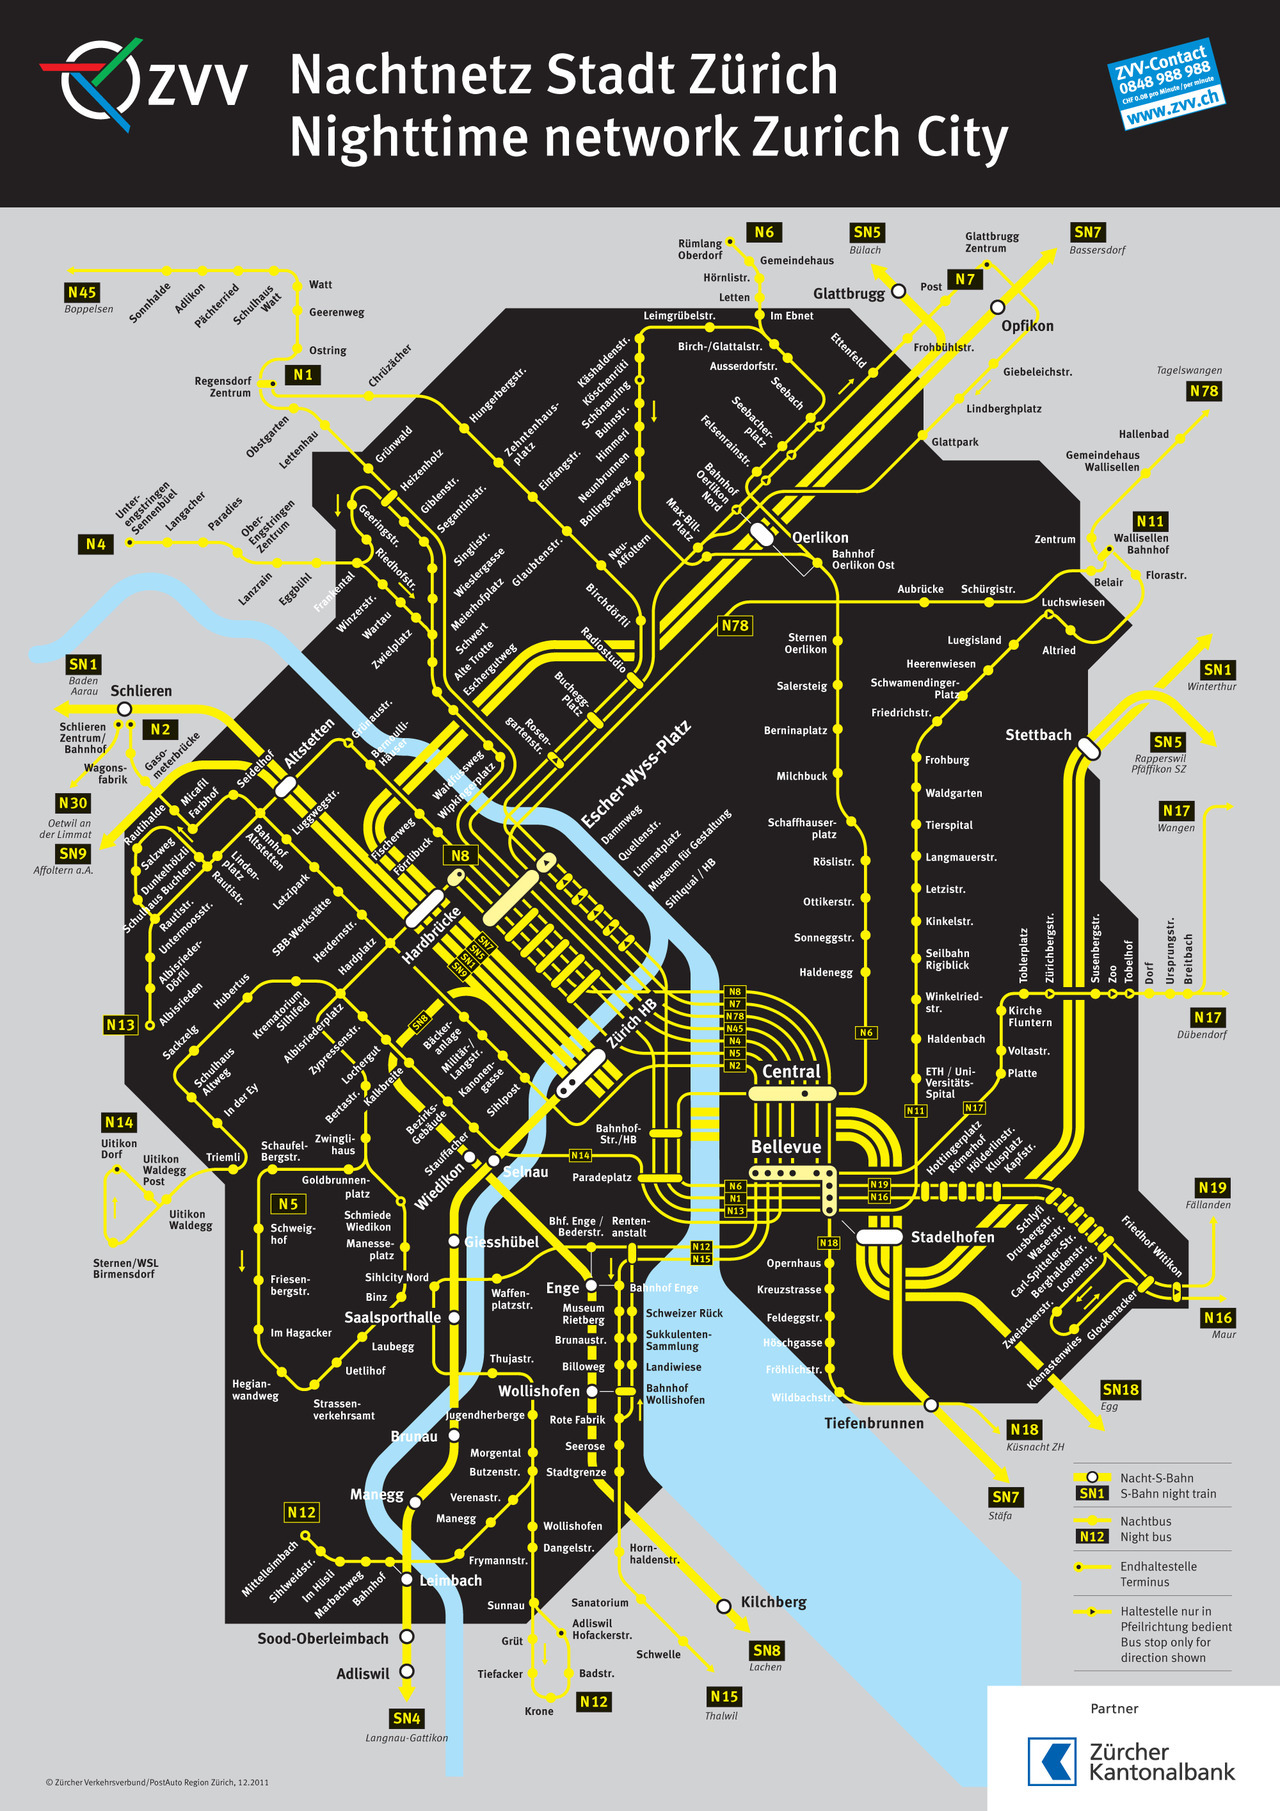 Official Map: City of Zurich Night S-Bahn and Bus Network, Switzerland One type of map we haven't covered yet here at Transit Maps is the night services map, often considered a very poor relation to the main map. However, there are some excellent examples out there, especially this black and yellow beauty from the city of Zurich in Switzerland. Have we been there? No. What we like: Graphically very striking with its black and yellow colour scheme. Good differentiation between bus and train services accomplished by use of thick and thin route lines, and some subtle work at stations: train stations are white, major bus interchanges are a light tint of yellow, and minor bus stations are a darker tint of yellow. Fits seamlessly into the next map up in the series, showing night services in the Canton of Zurich (PDF). What we don't like: The way the S-Bahn tracks disappear between the Hauptbahnhof and Bellevue (re-emerging only to cross the river on a bridge) may be logical - the tracks are in a tunnel - but it breaks the flow of the route badly. Our rating: A great example of the night services map genre. 4 stars!  (Source: Official ZVV website)